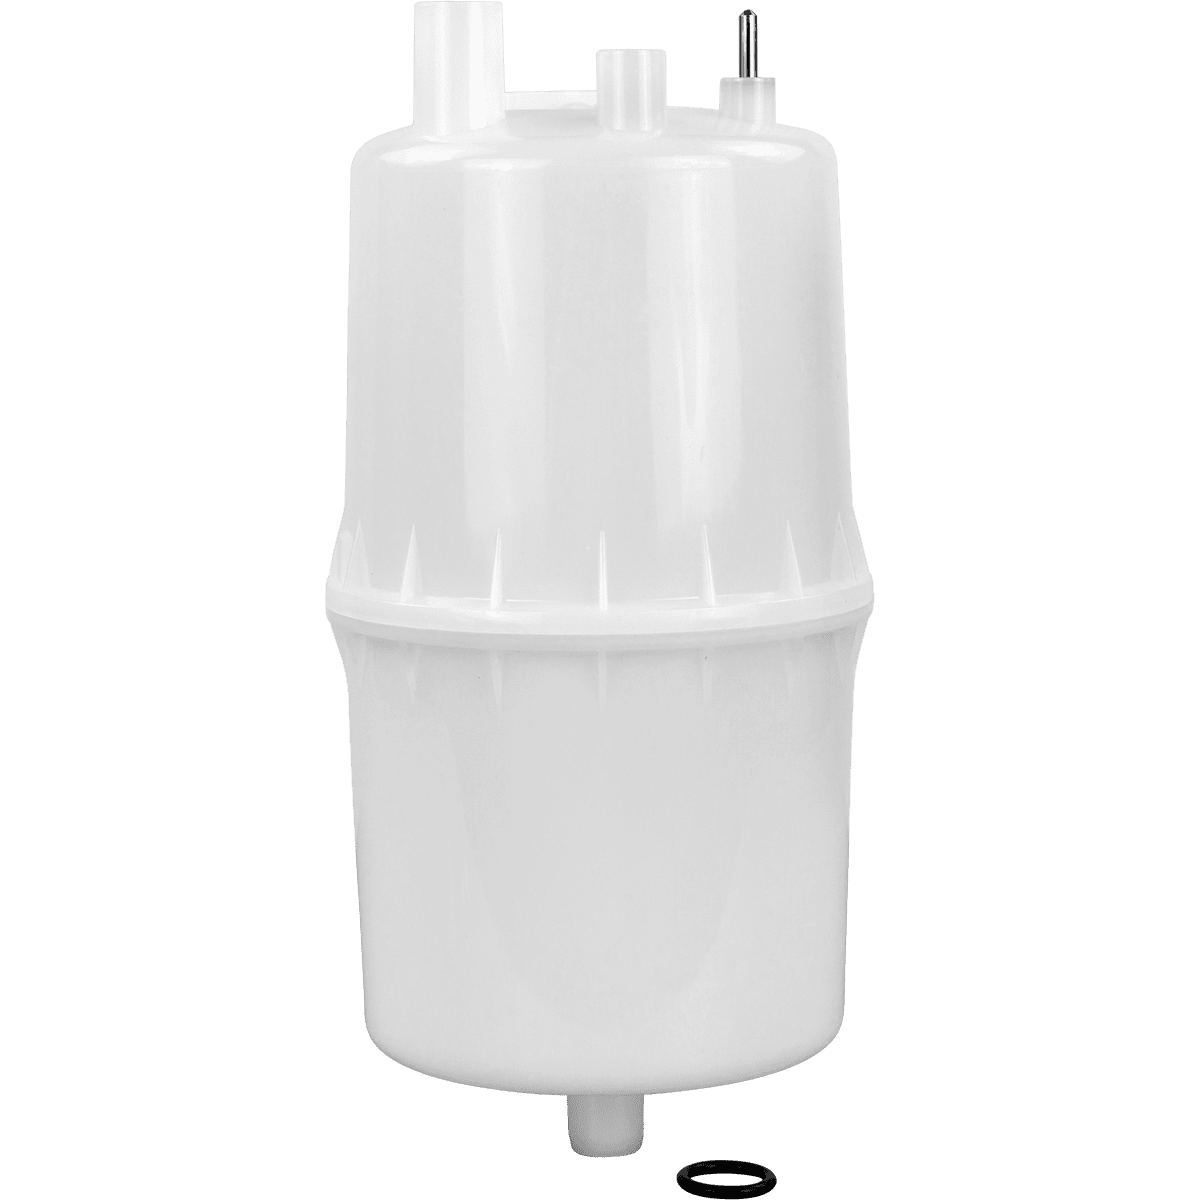 Aprilaire 204aac Steam Humidifier Cylinder (fits Nortec® 204)